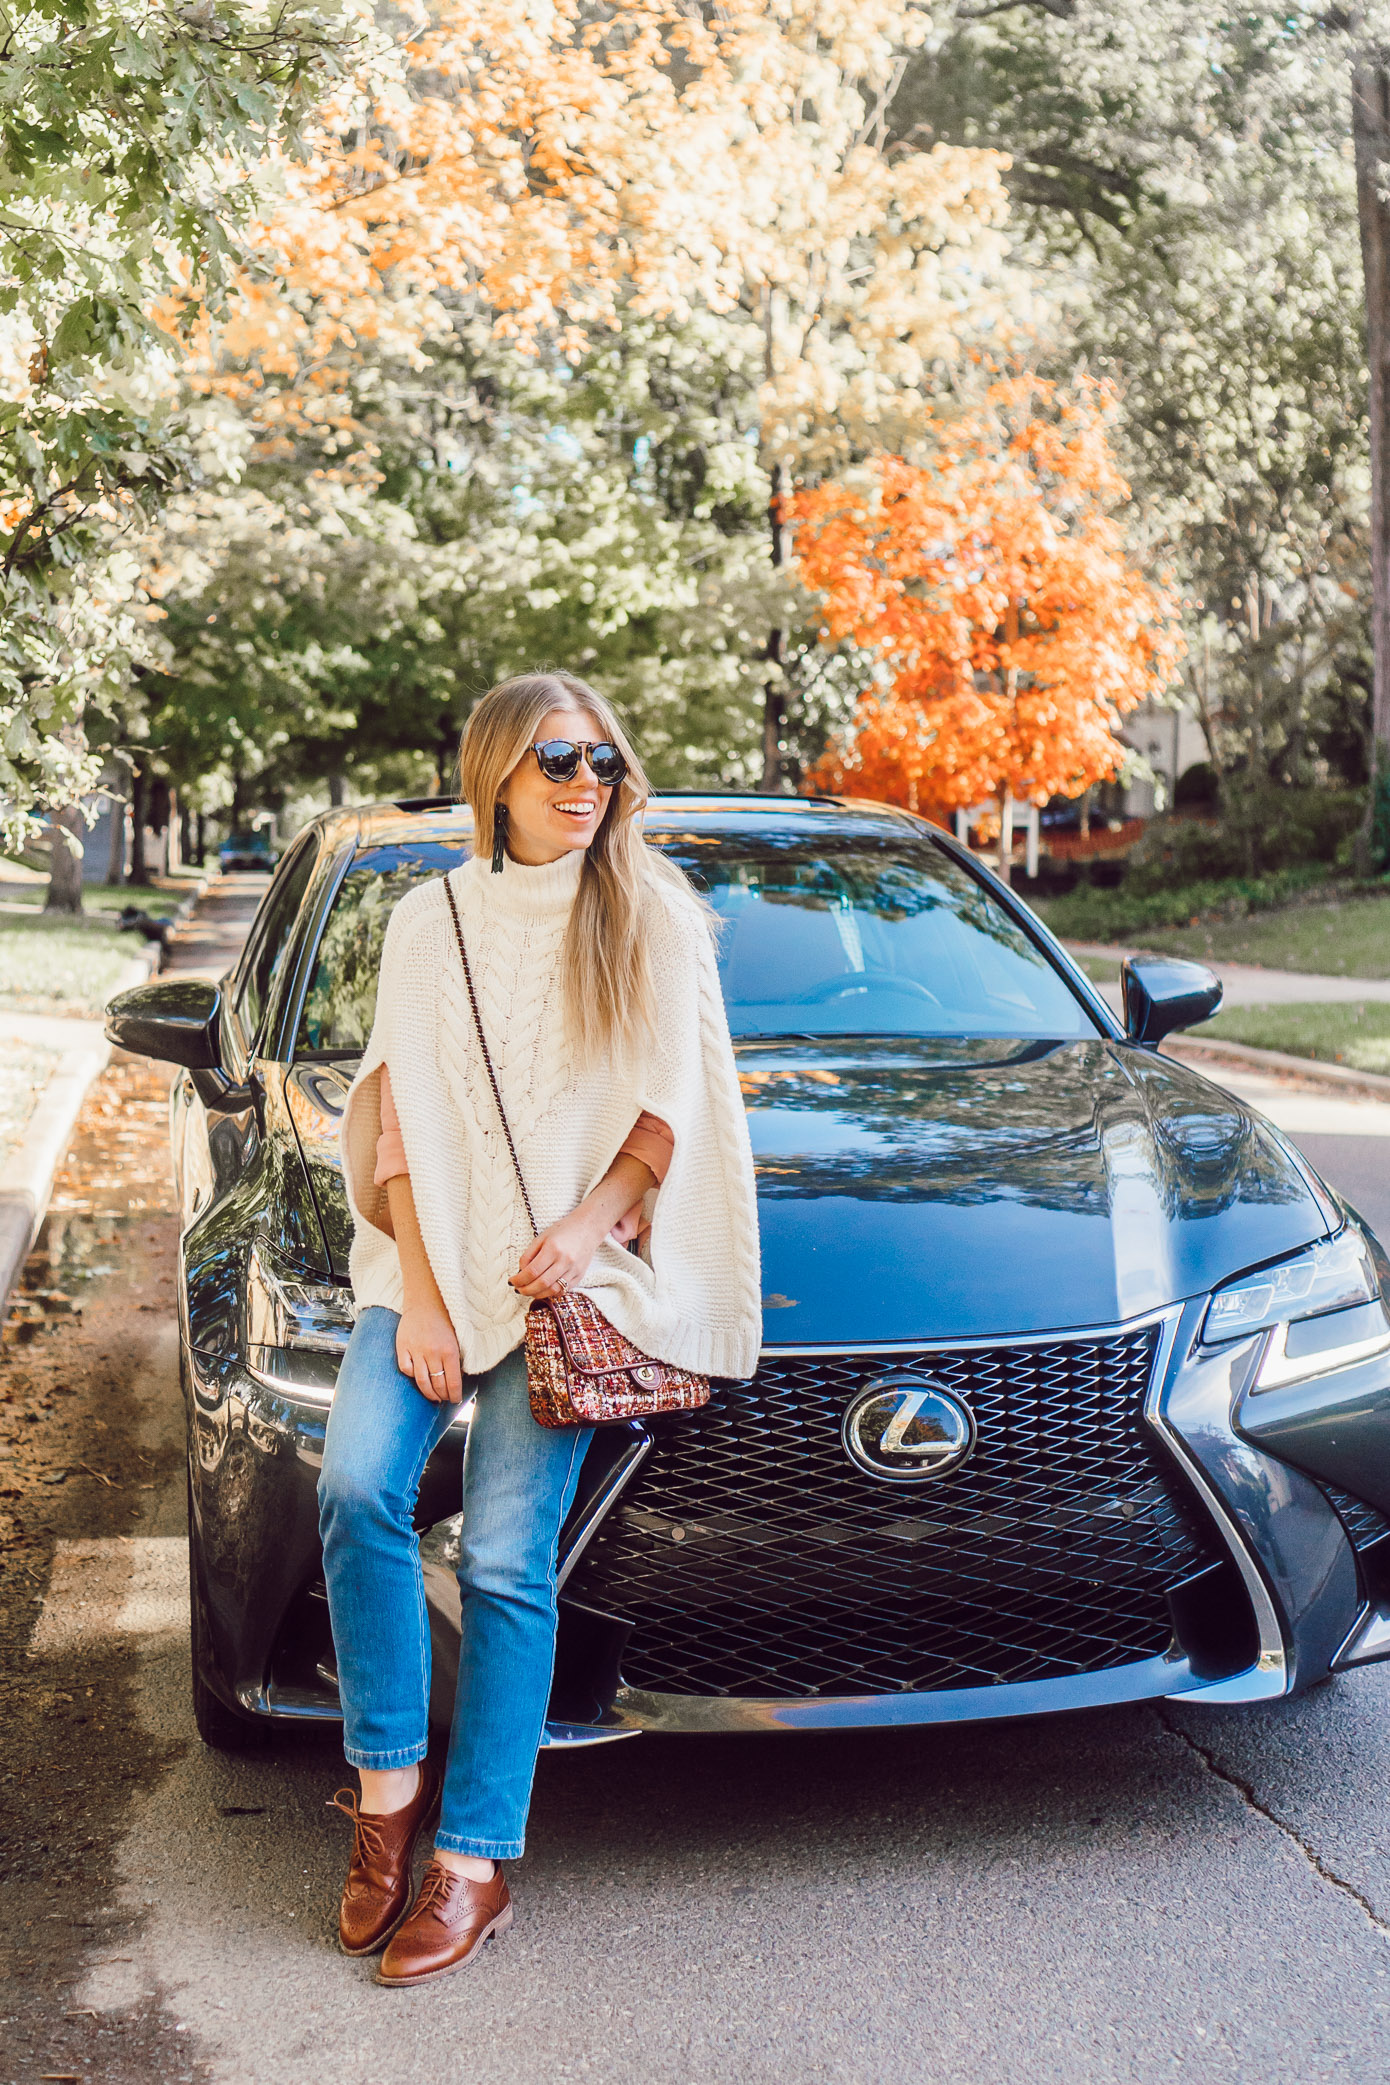 The Dwell Hotel Chattanooga Tennessee, Lexus GS350 | Chattanooga Travel Guide Featured on Louella Reese